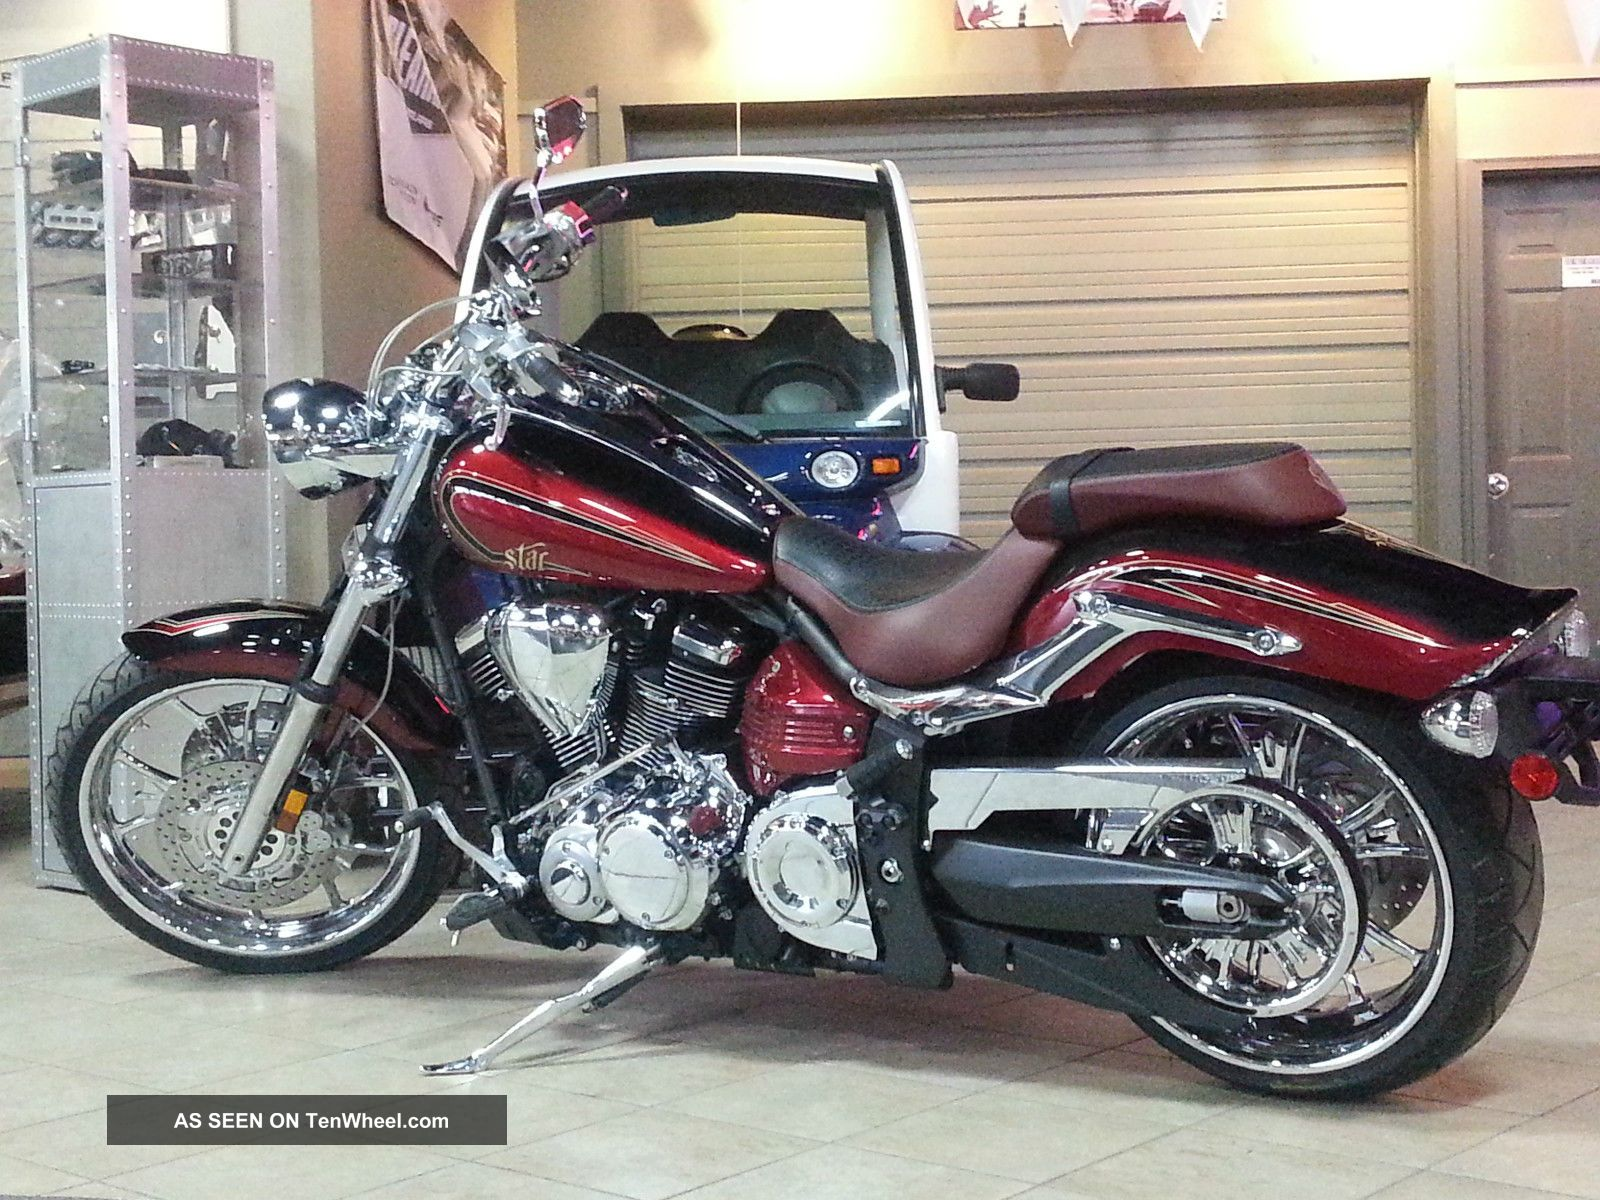 2013 Yamaha Raider Scl 113 Ci Chrome Wheels $5k Off Raider photo